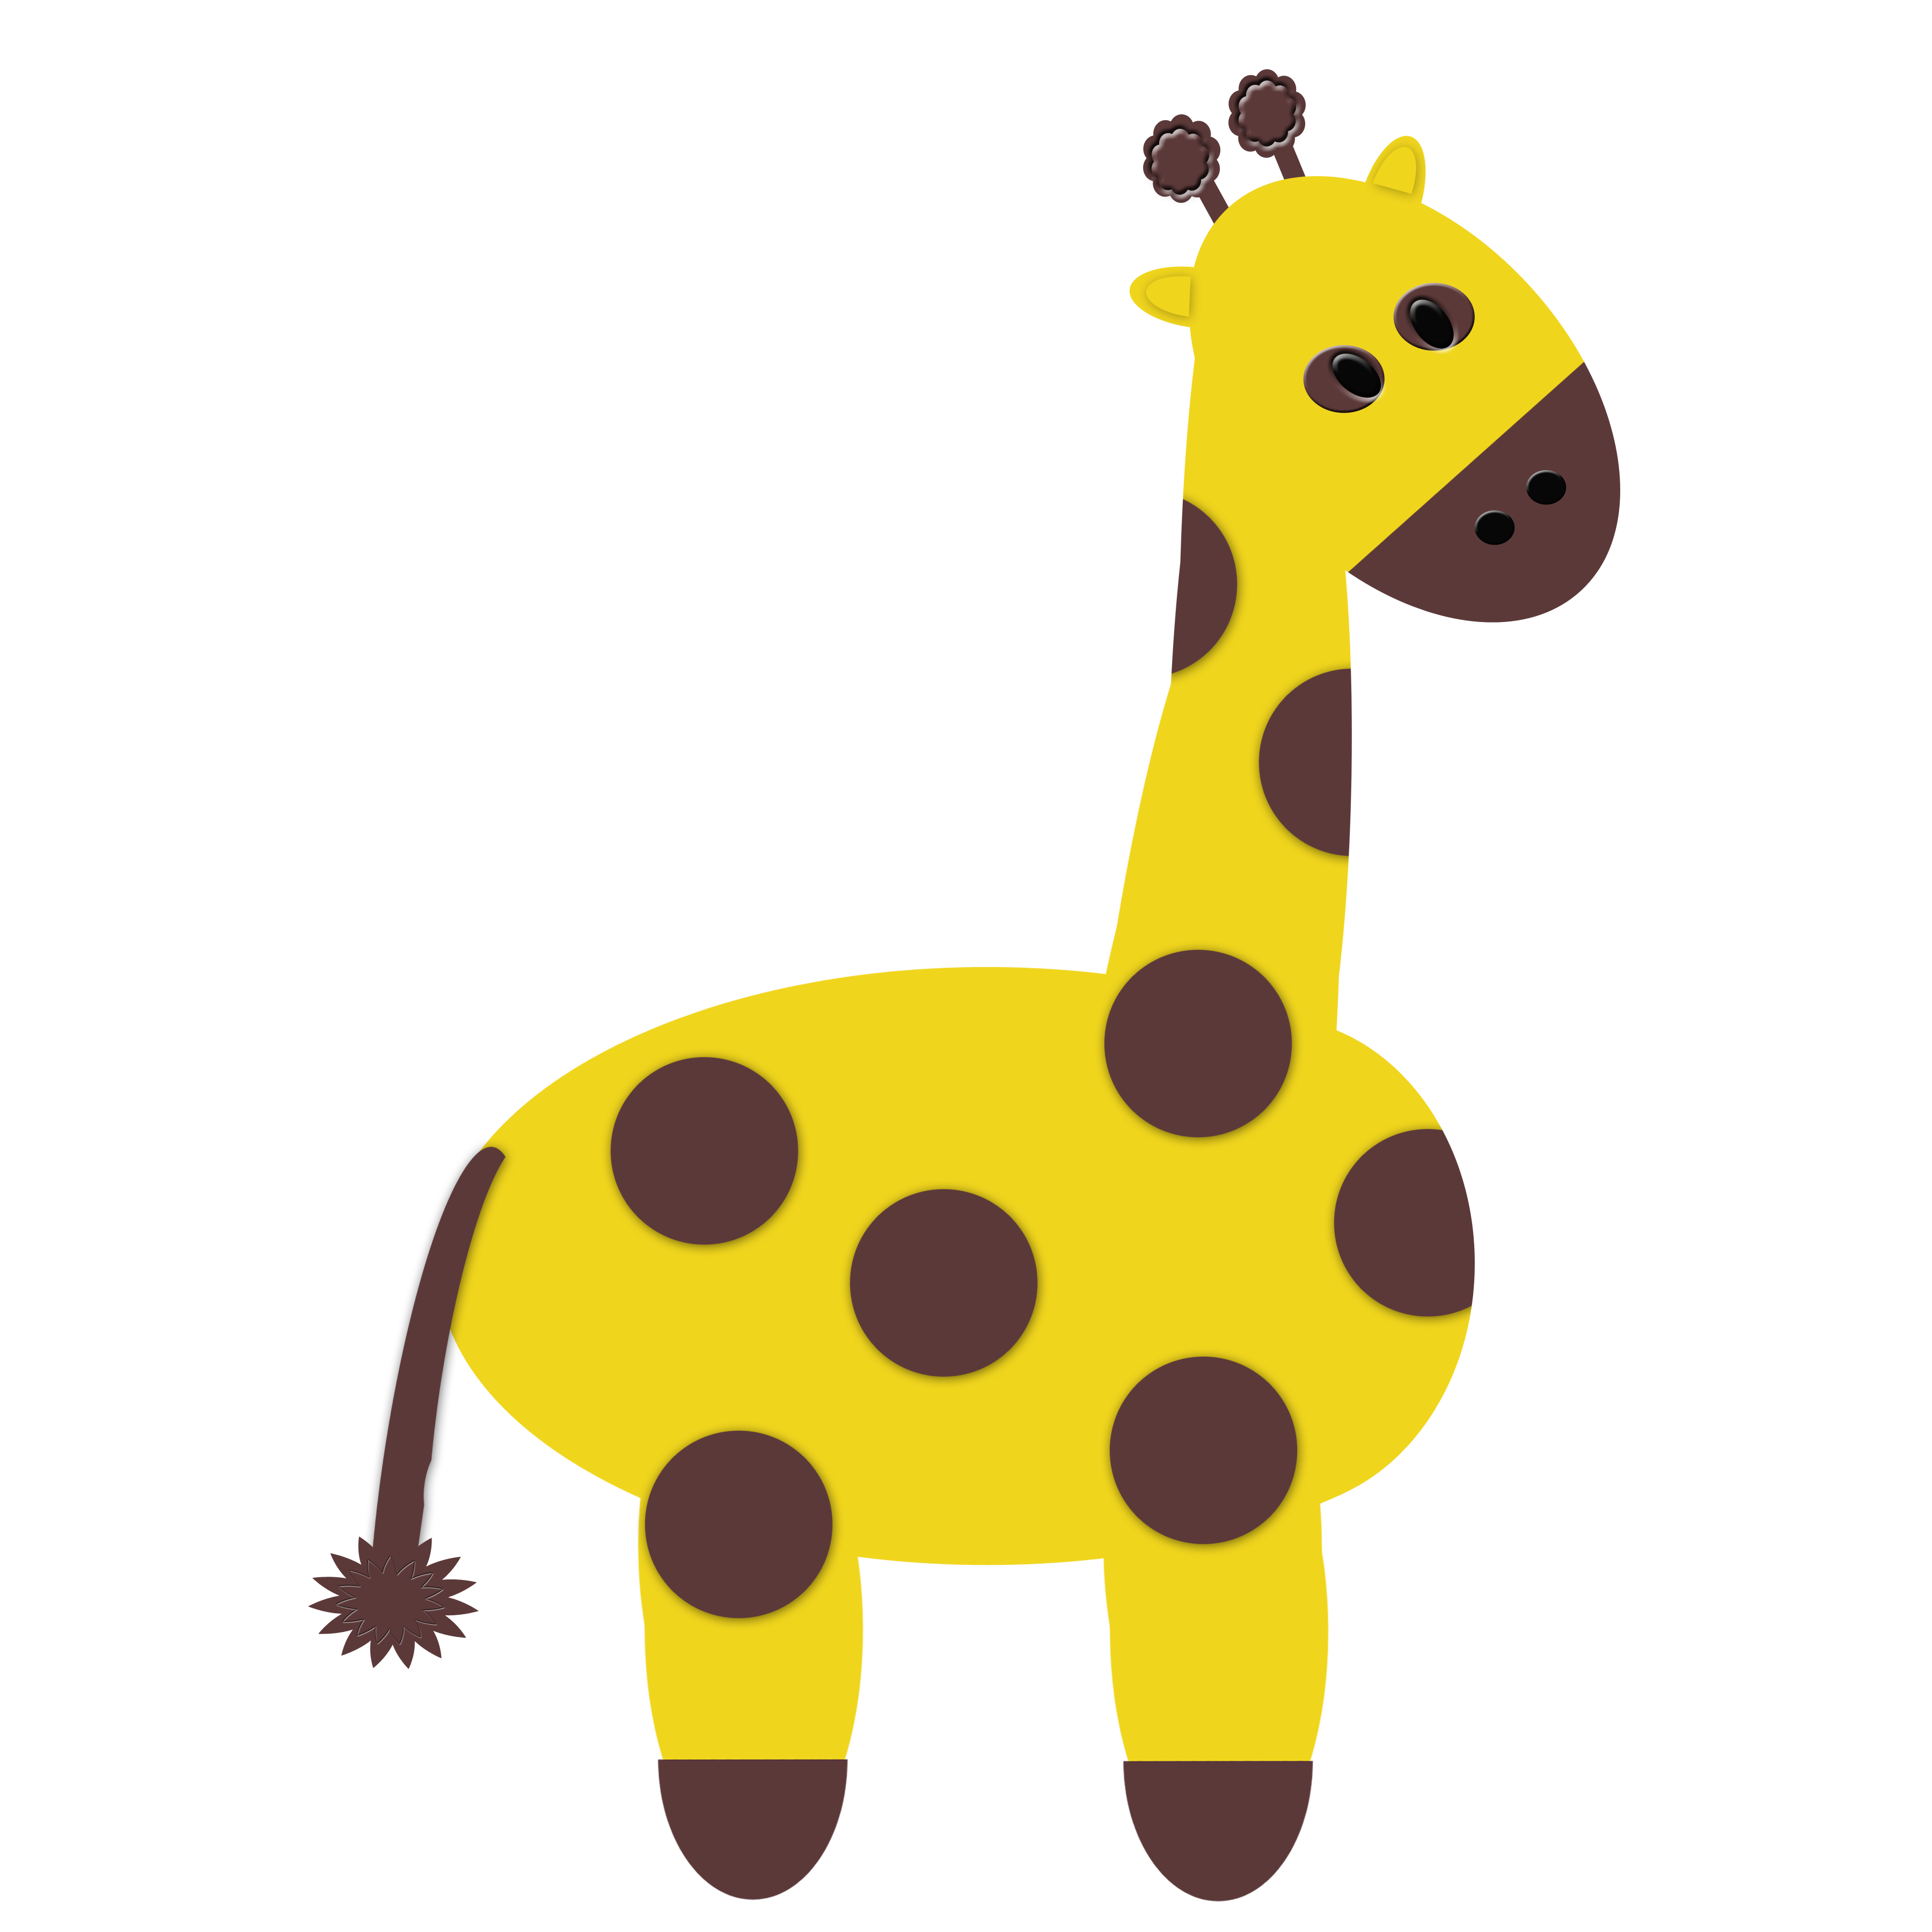 Free PNG Zoo Animals - 41590